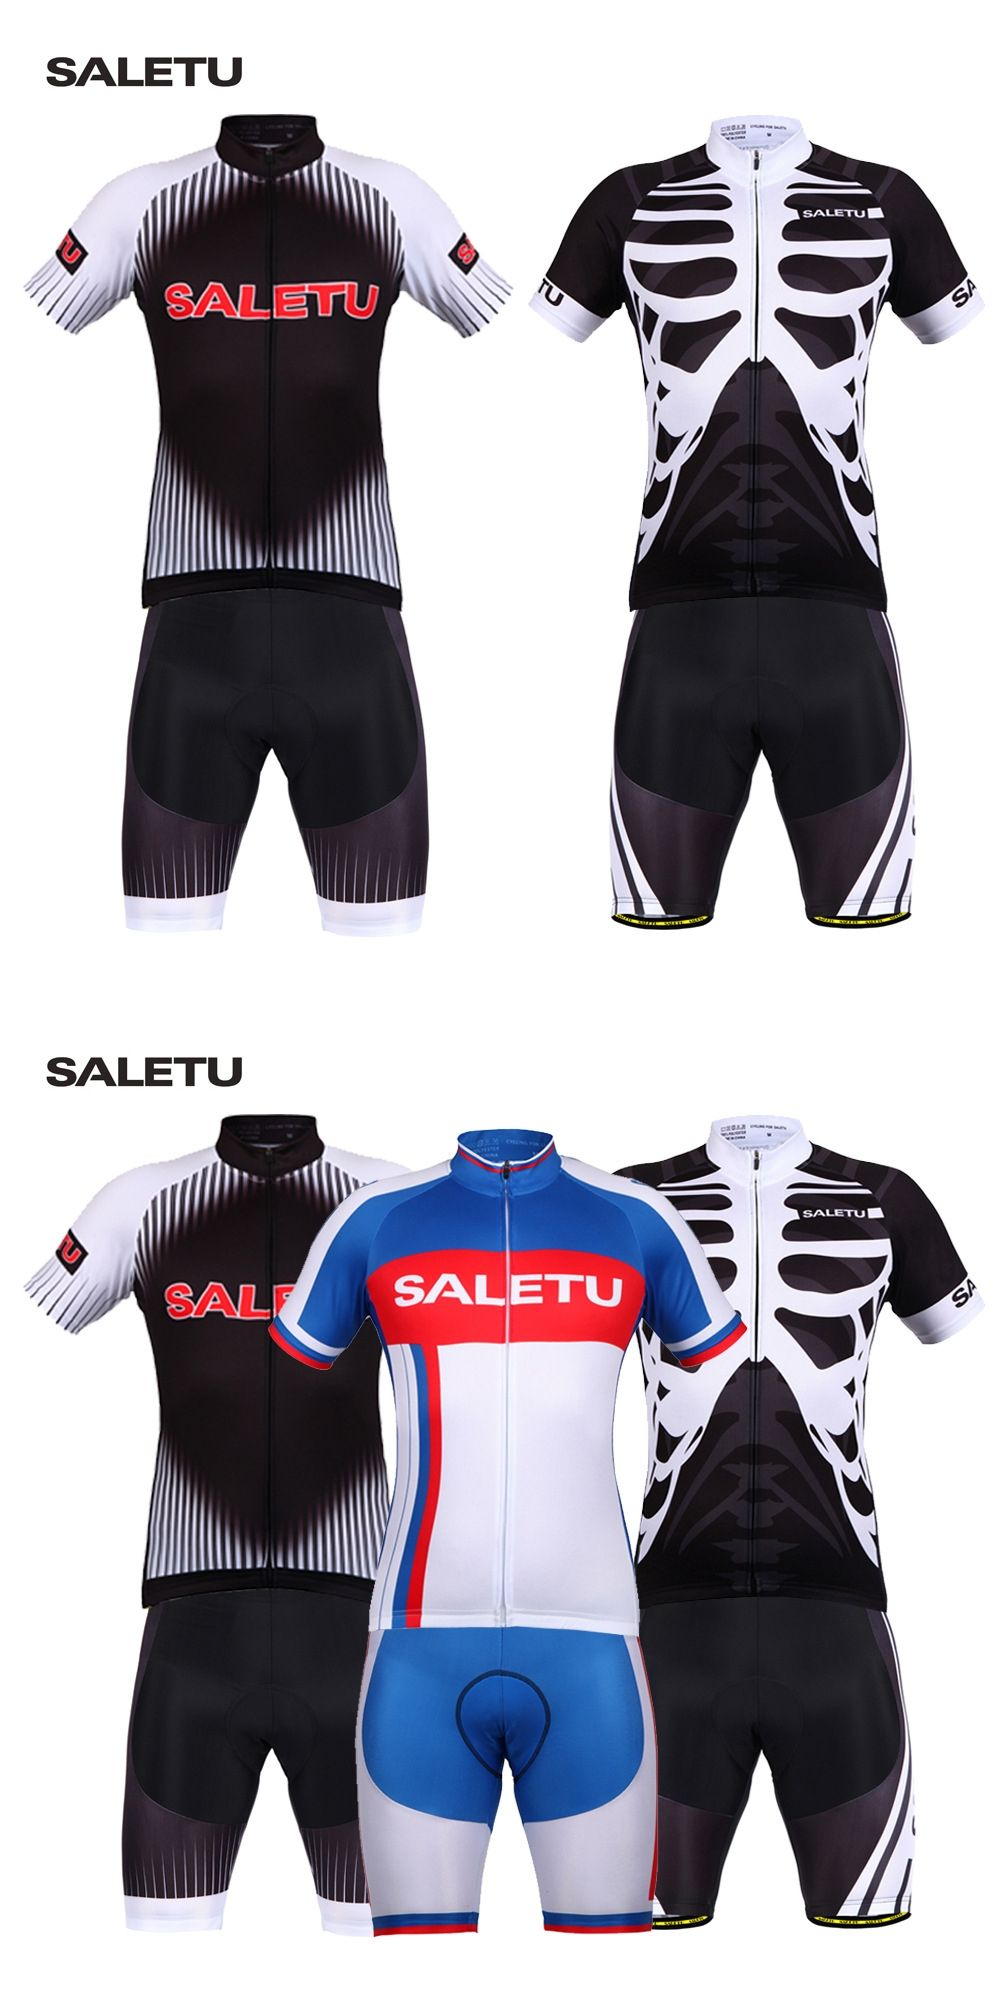 54460510c SALETU Cycling Jersey Short Sleeve Triathlon Skinsuit 4D Padded Mtb Bike  Bicycle Jersey Cycling Clothing Sets